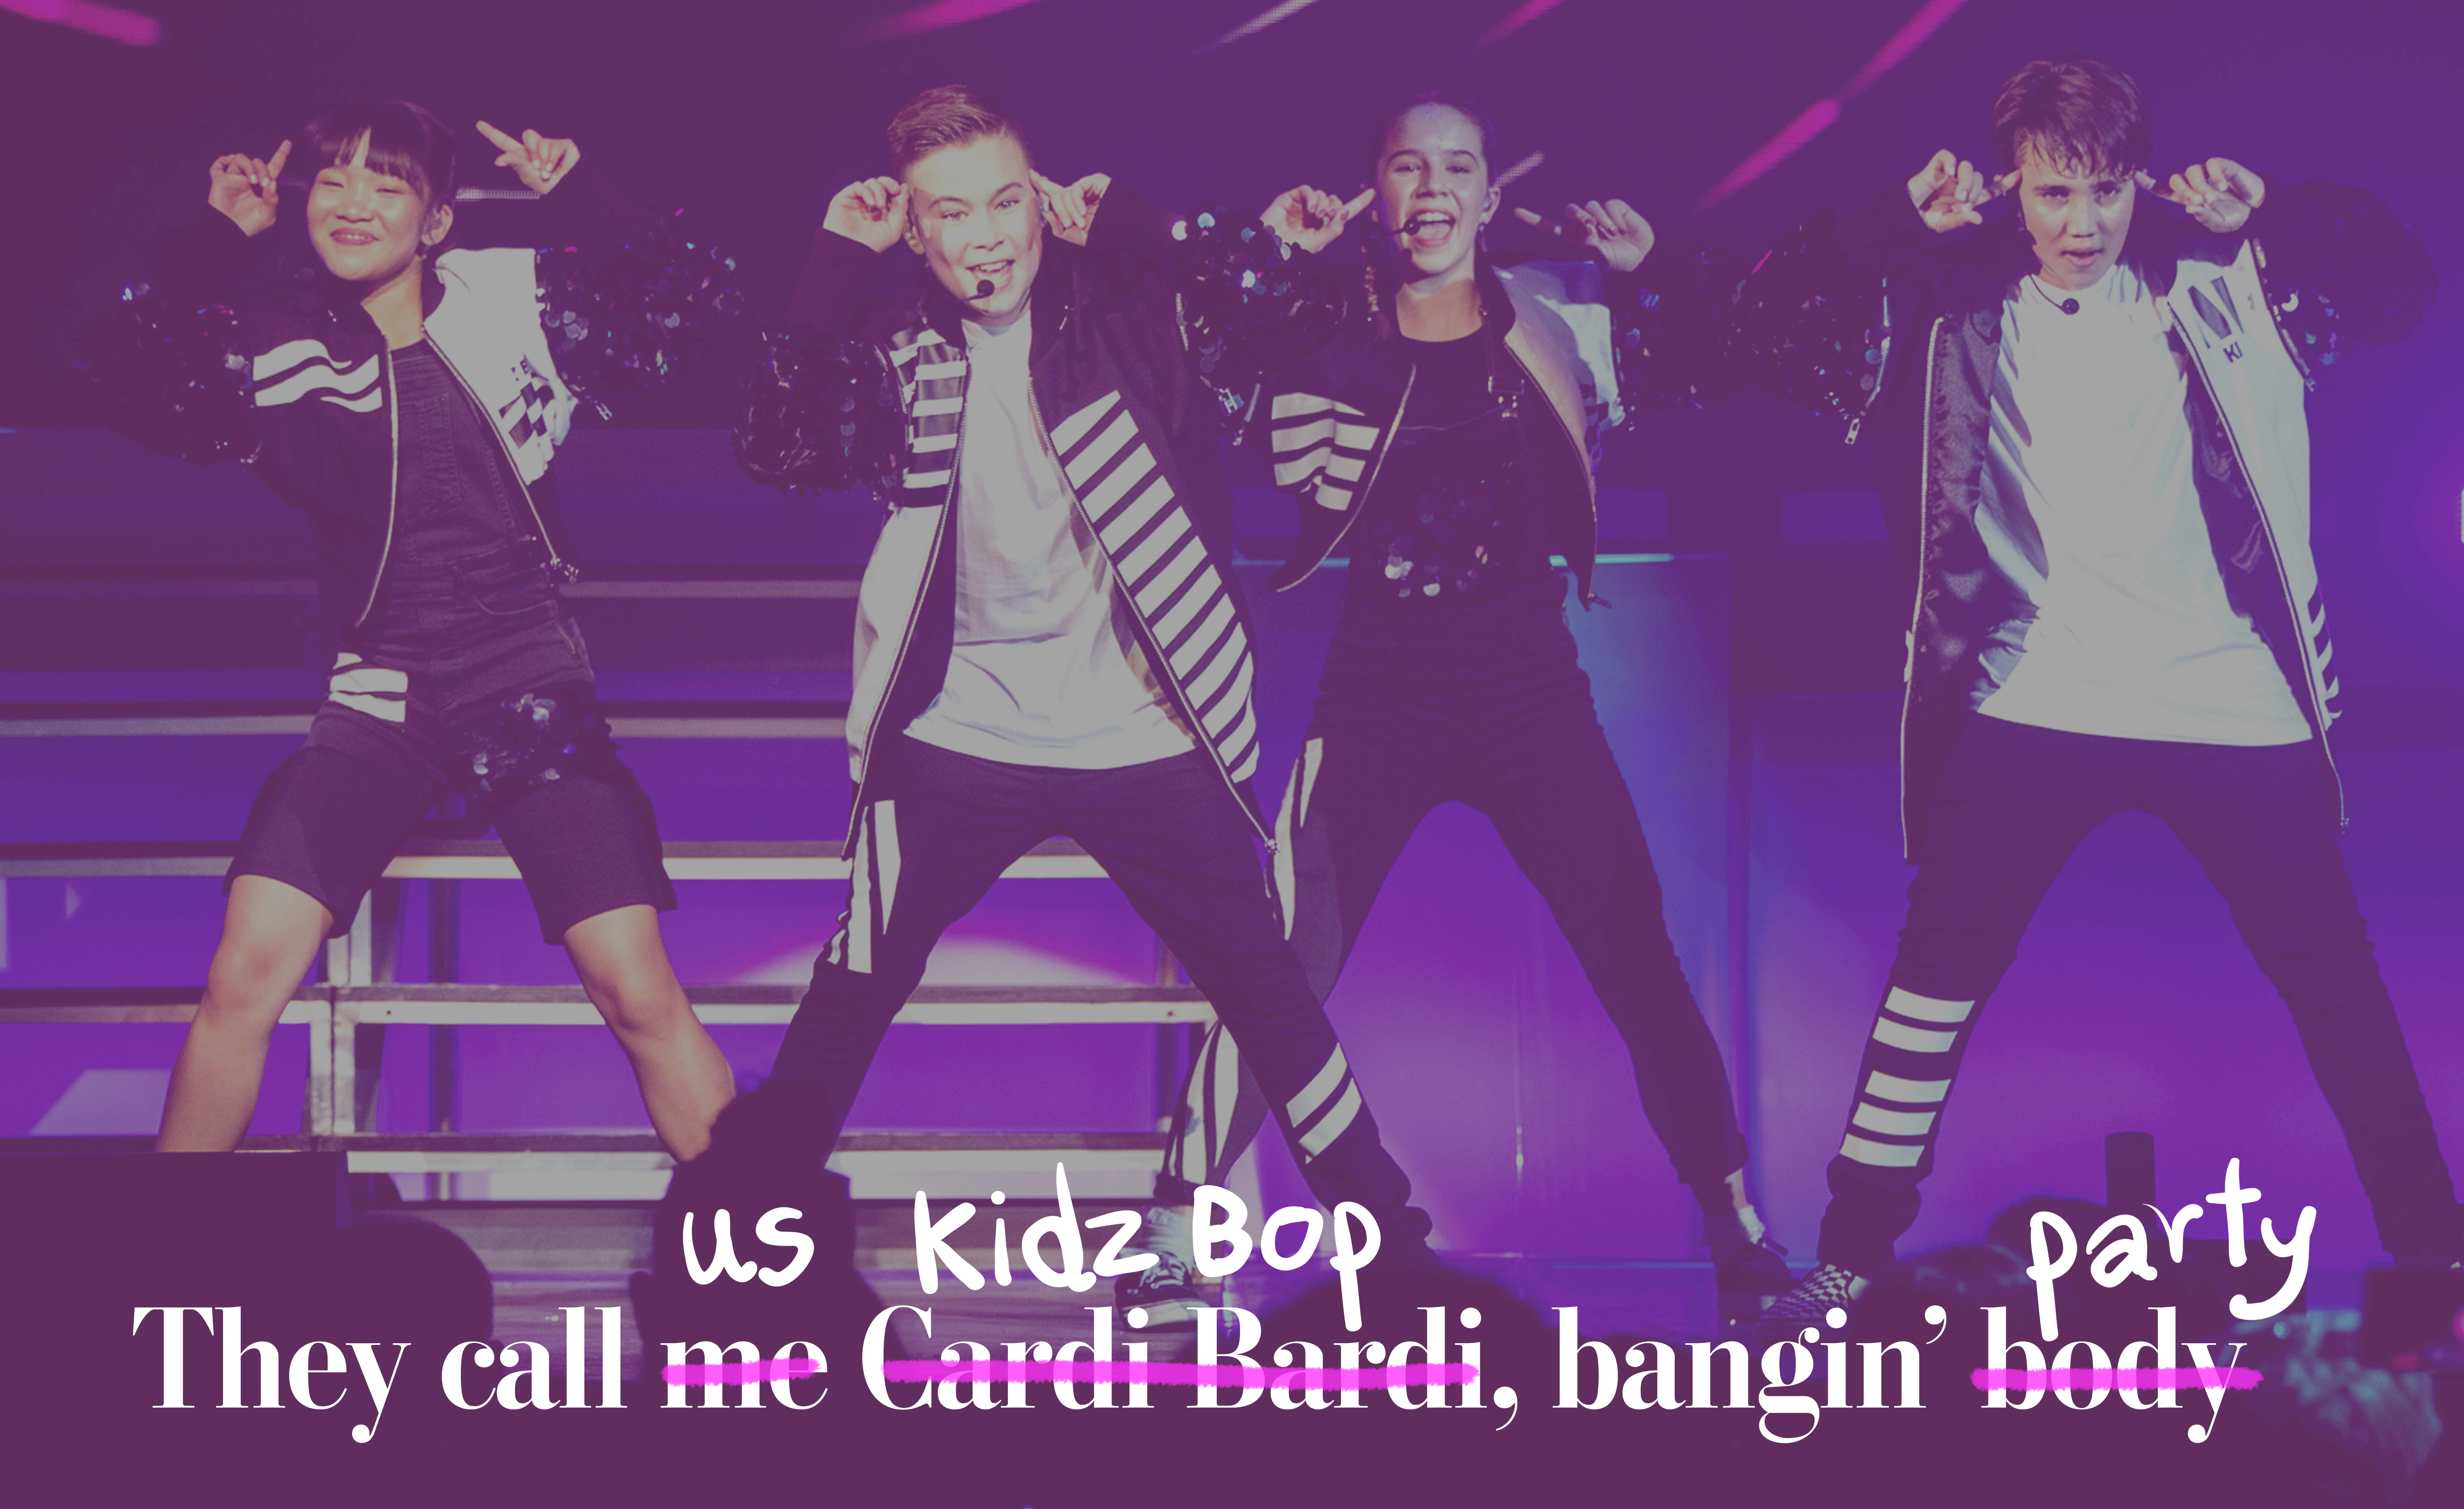 Kidz Bop is the go-to of tot music  But do we really need to